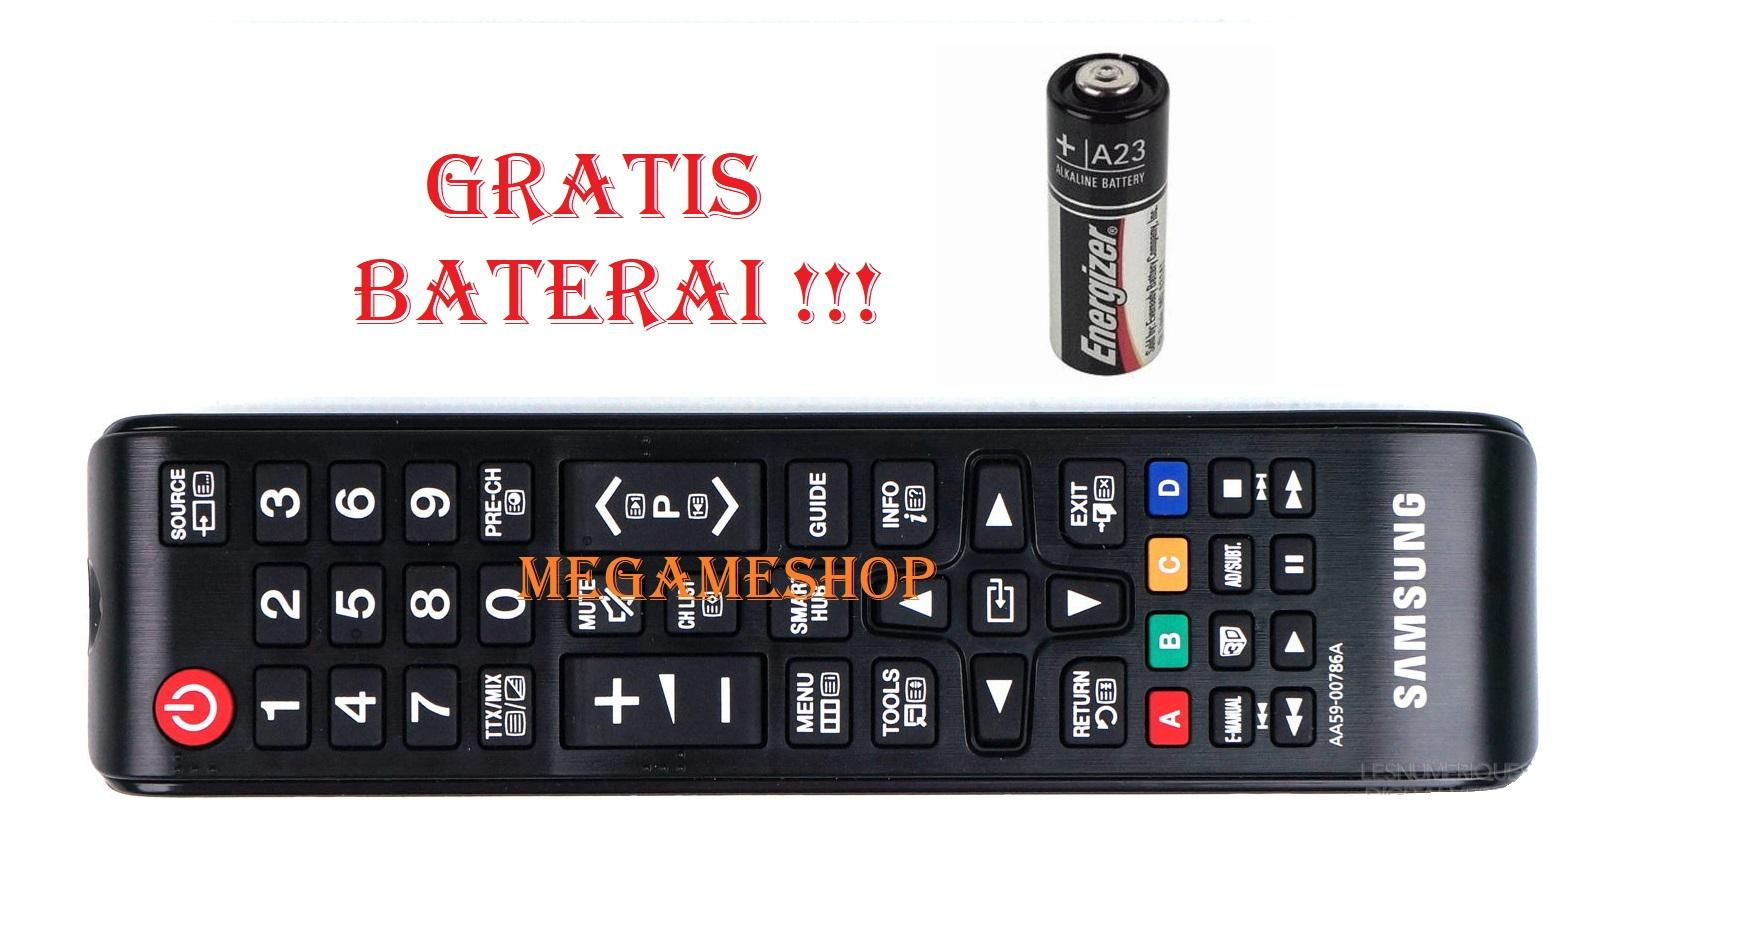 Samsung Remote TV LCD LED ORIGINAL bukan KW Plus Gratis Baterai_Megameshop